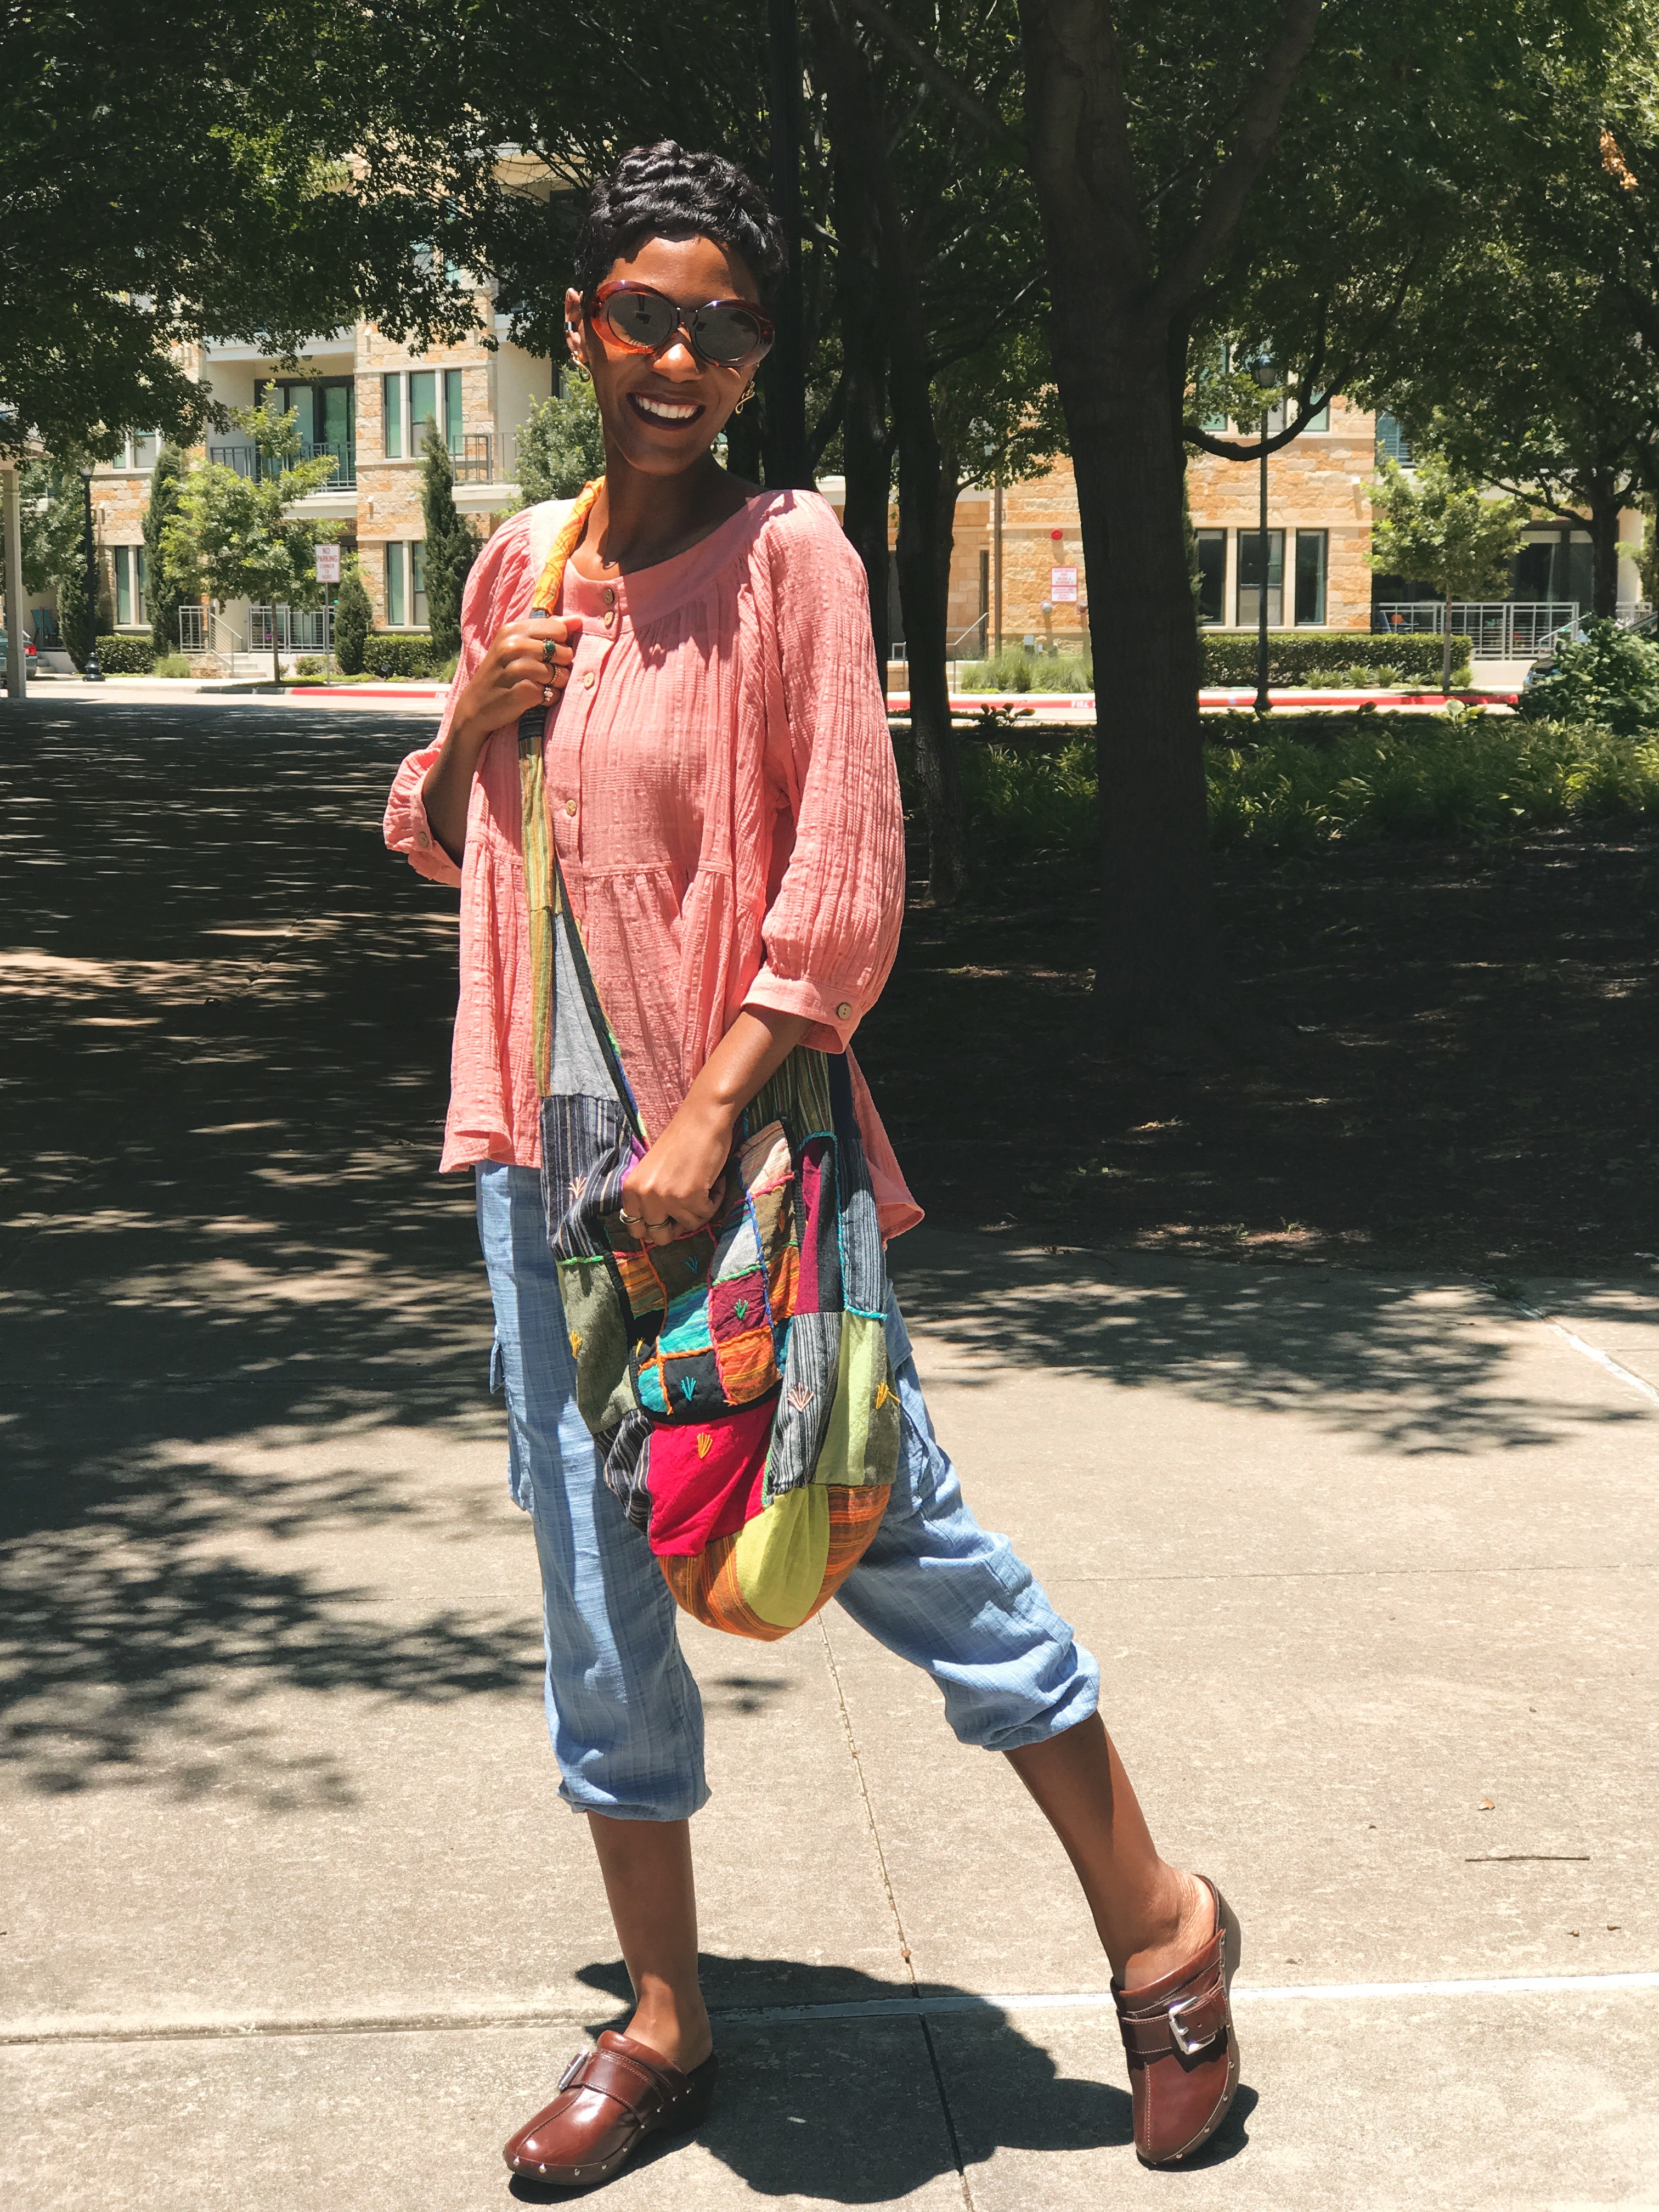 Restyle This With That: My Thrifted Boho Chic Look and Patchwork Bags